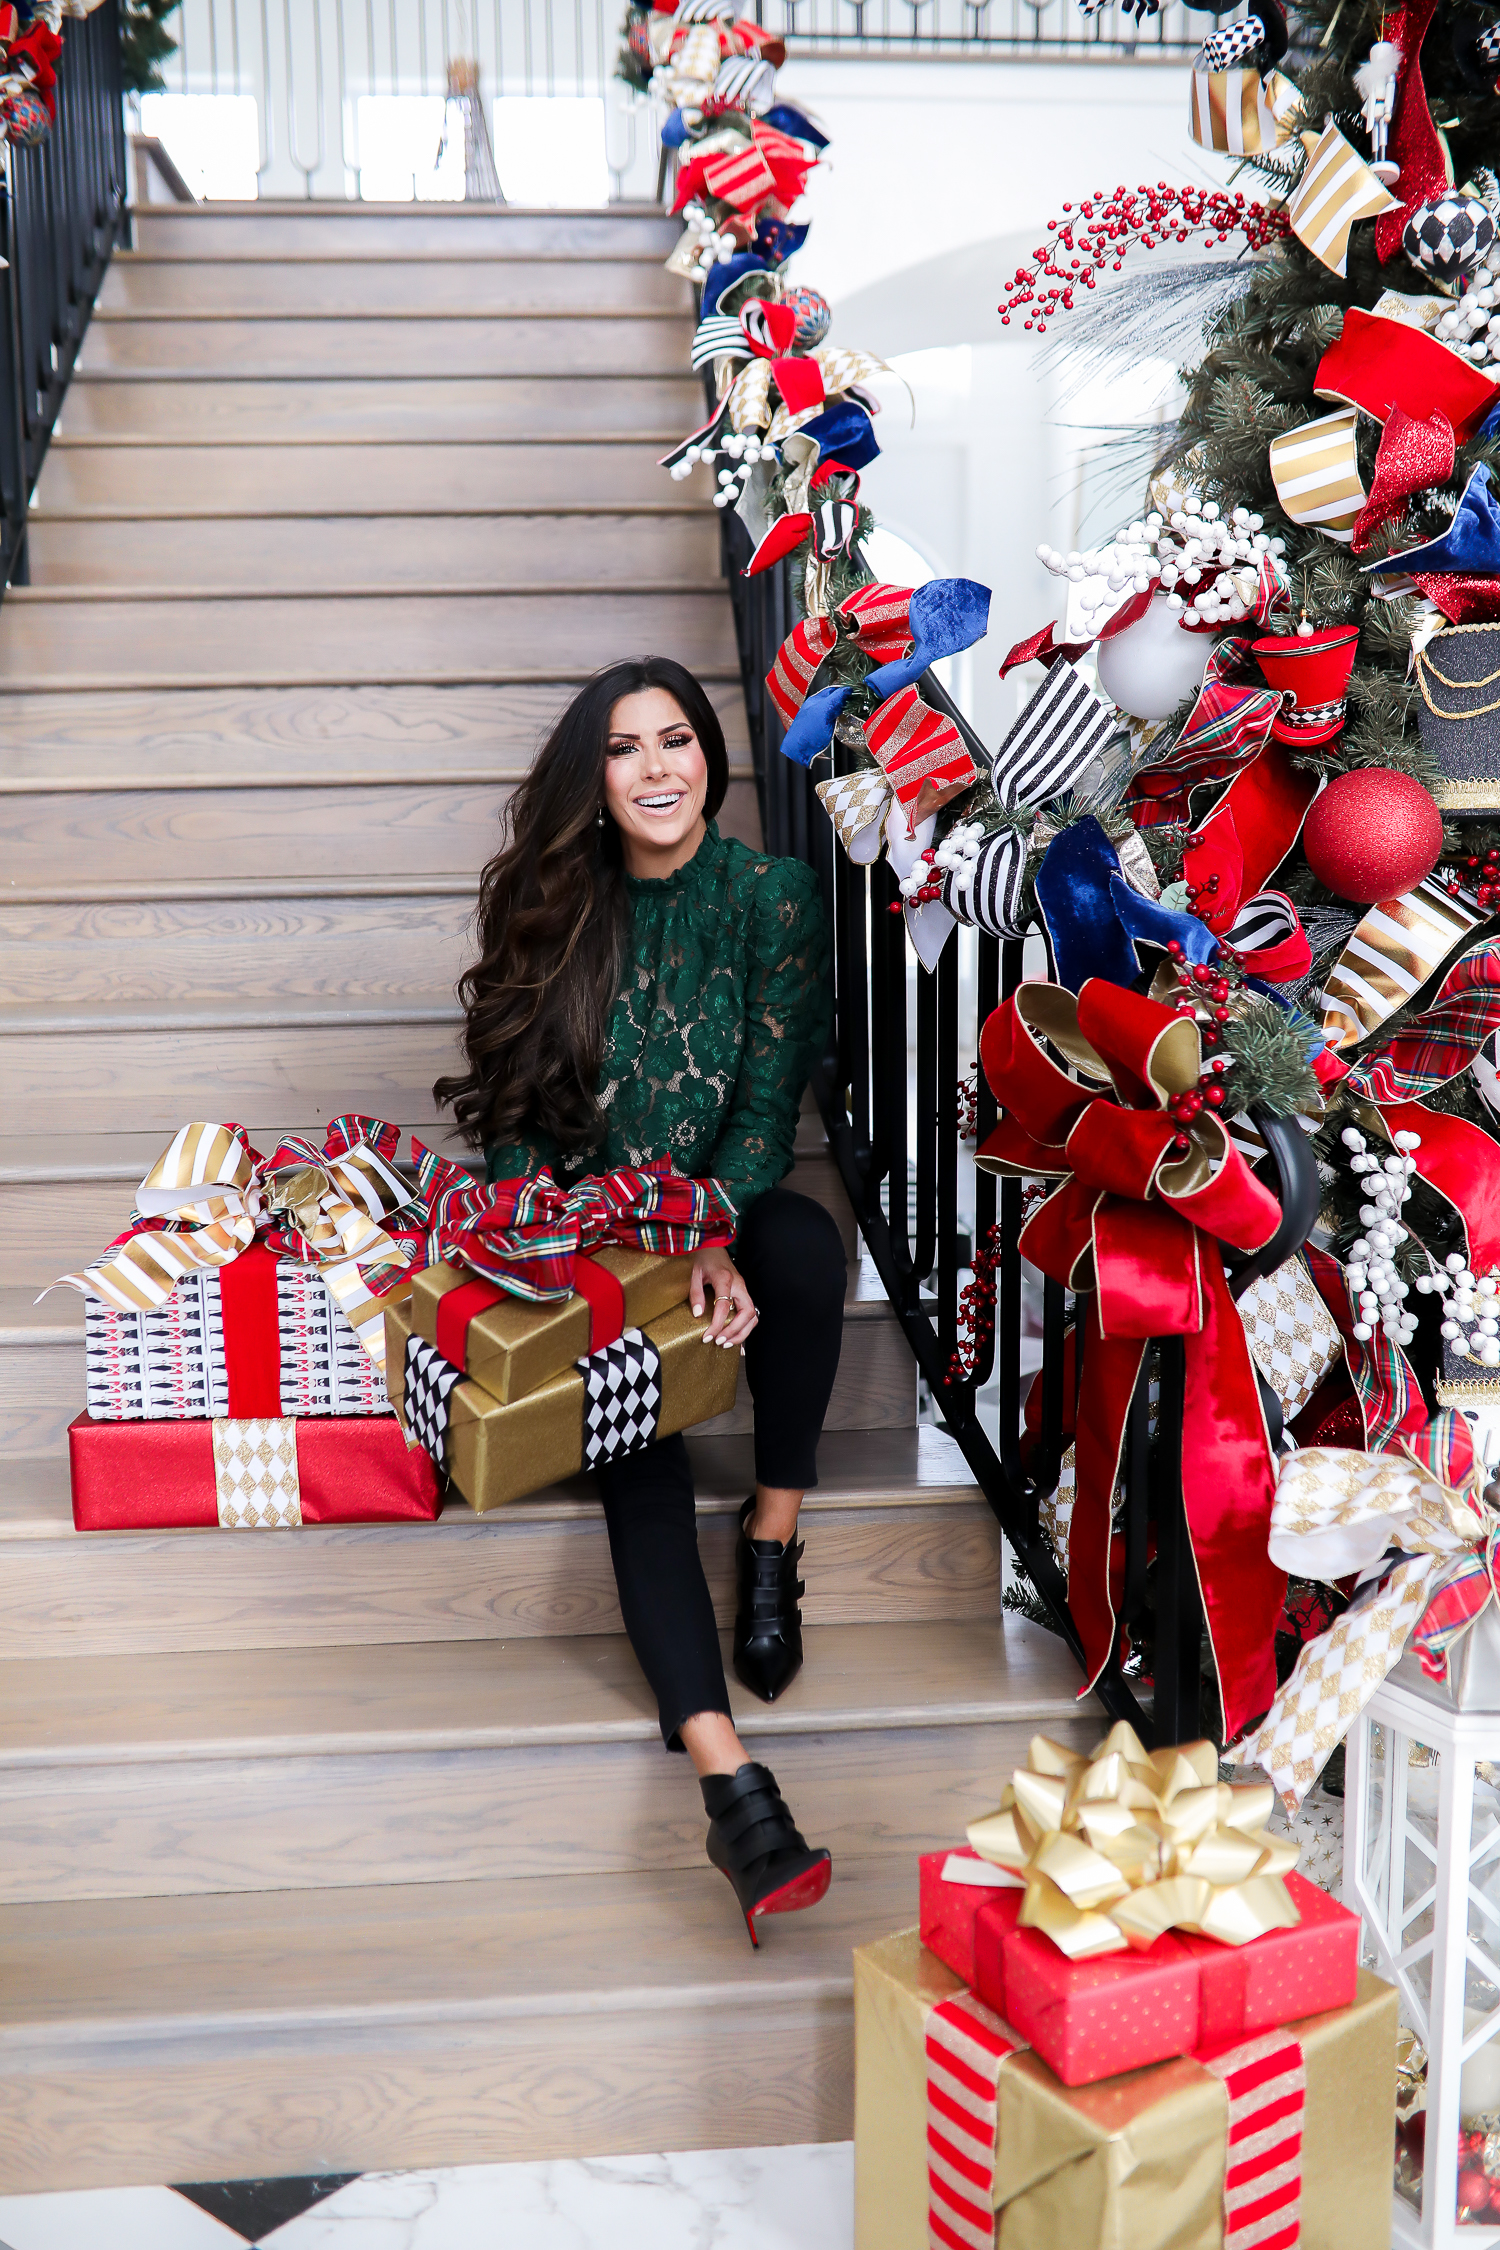 christmas tree inspiration, pinterest christmas tree inspiration 2019, gift ideas gift guide 2019, wayf lace top, chanel black gold belt, best christmas tree home decor, black loubtouin booties-2 | FAVORITE GIFT IDEAS FOR HER + MEGA GIVEAWAY [+Louis Vuitton Wallet] by popular Oklahoma life and style blog, The Sweetest Thing: image of a woman sitting on a staircase next to a pile of presents.